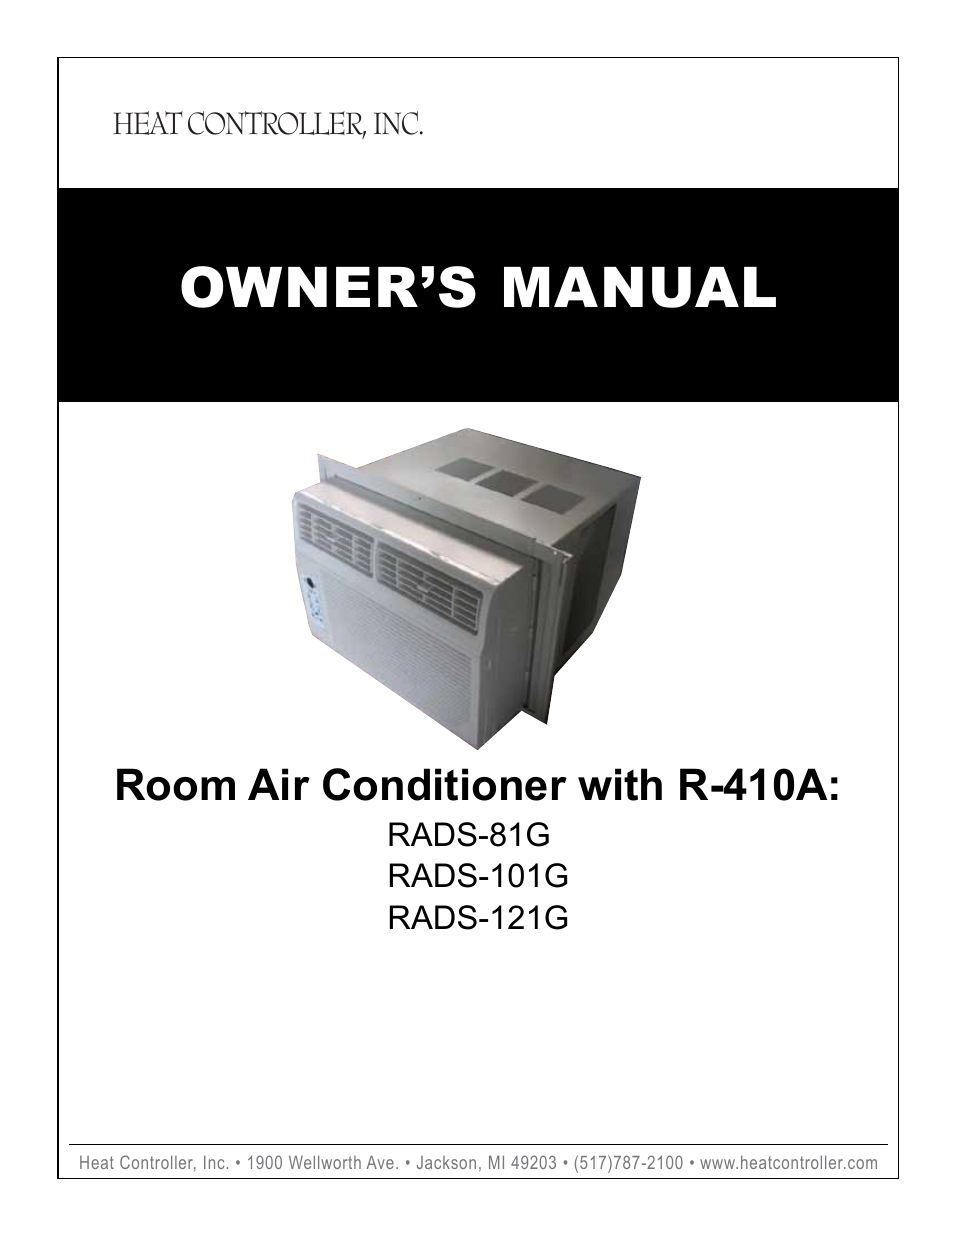 air conditioner with conditioners dehumidifier comforter aire portable comfort btu p room unit